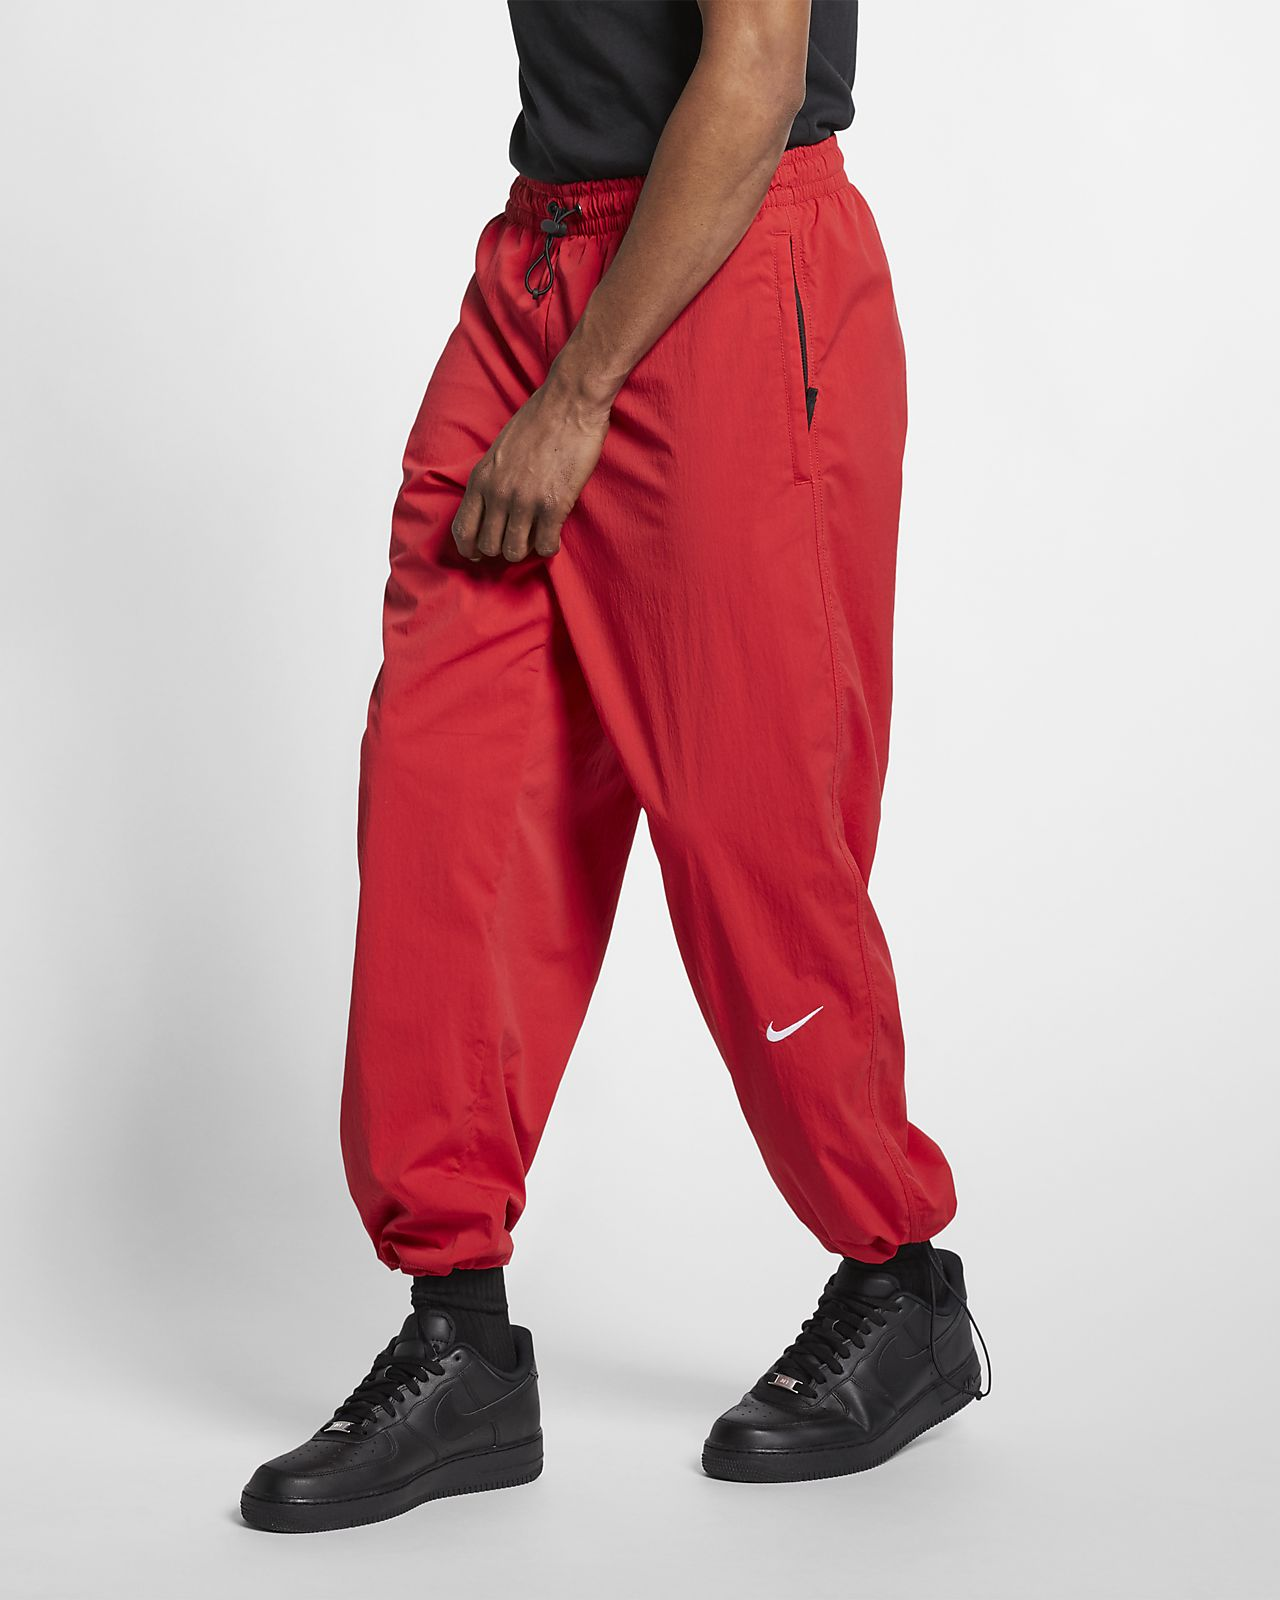 fcbc2eae0598 NikeLab Collection Men s Trousers. Nike.com SG